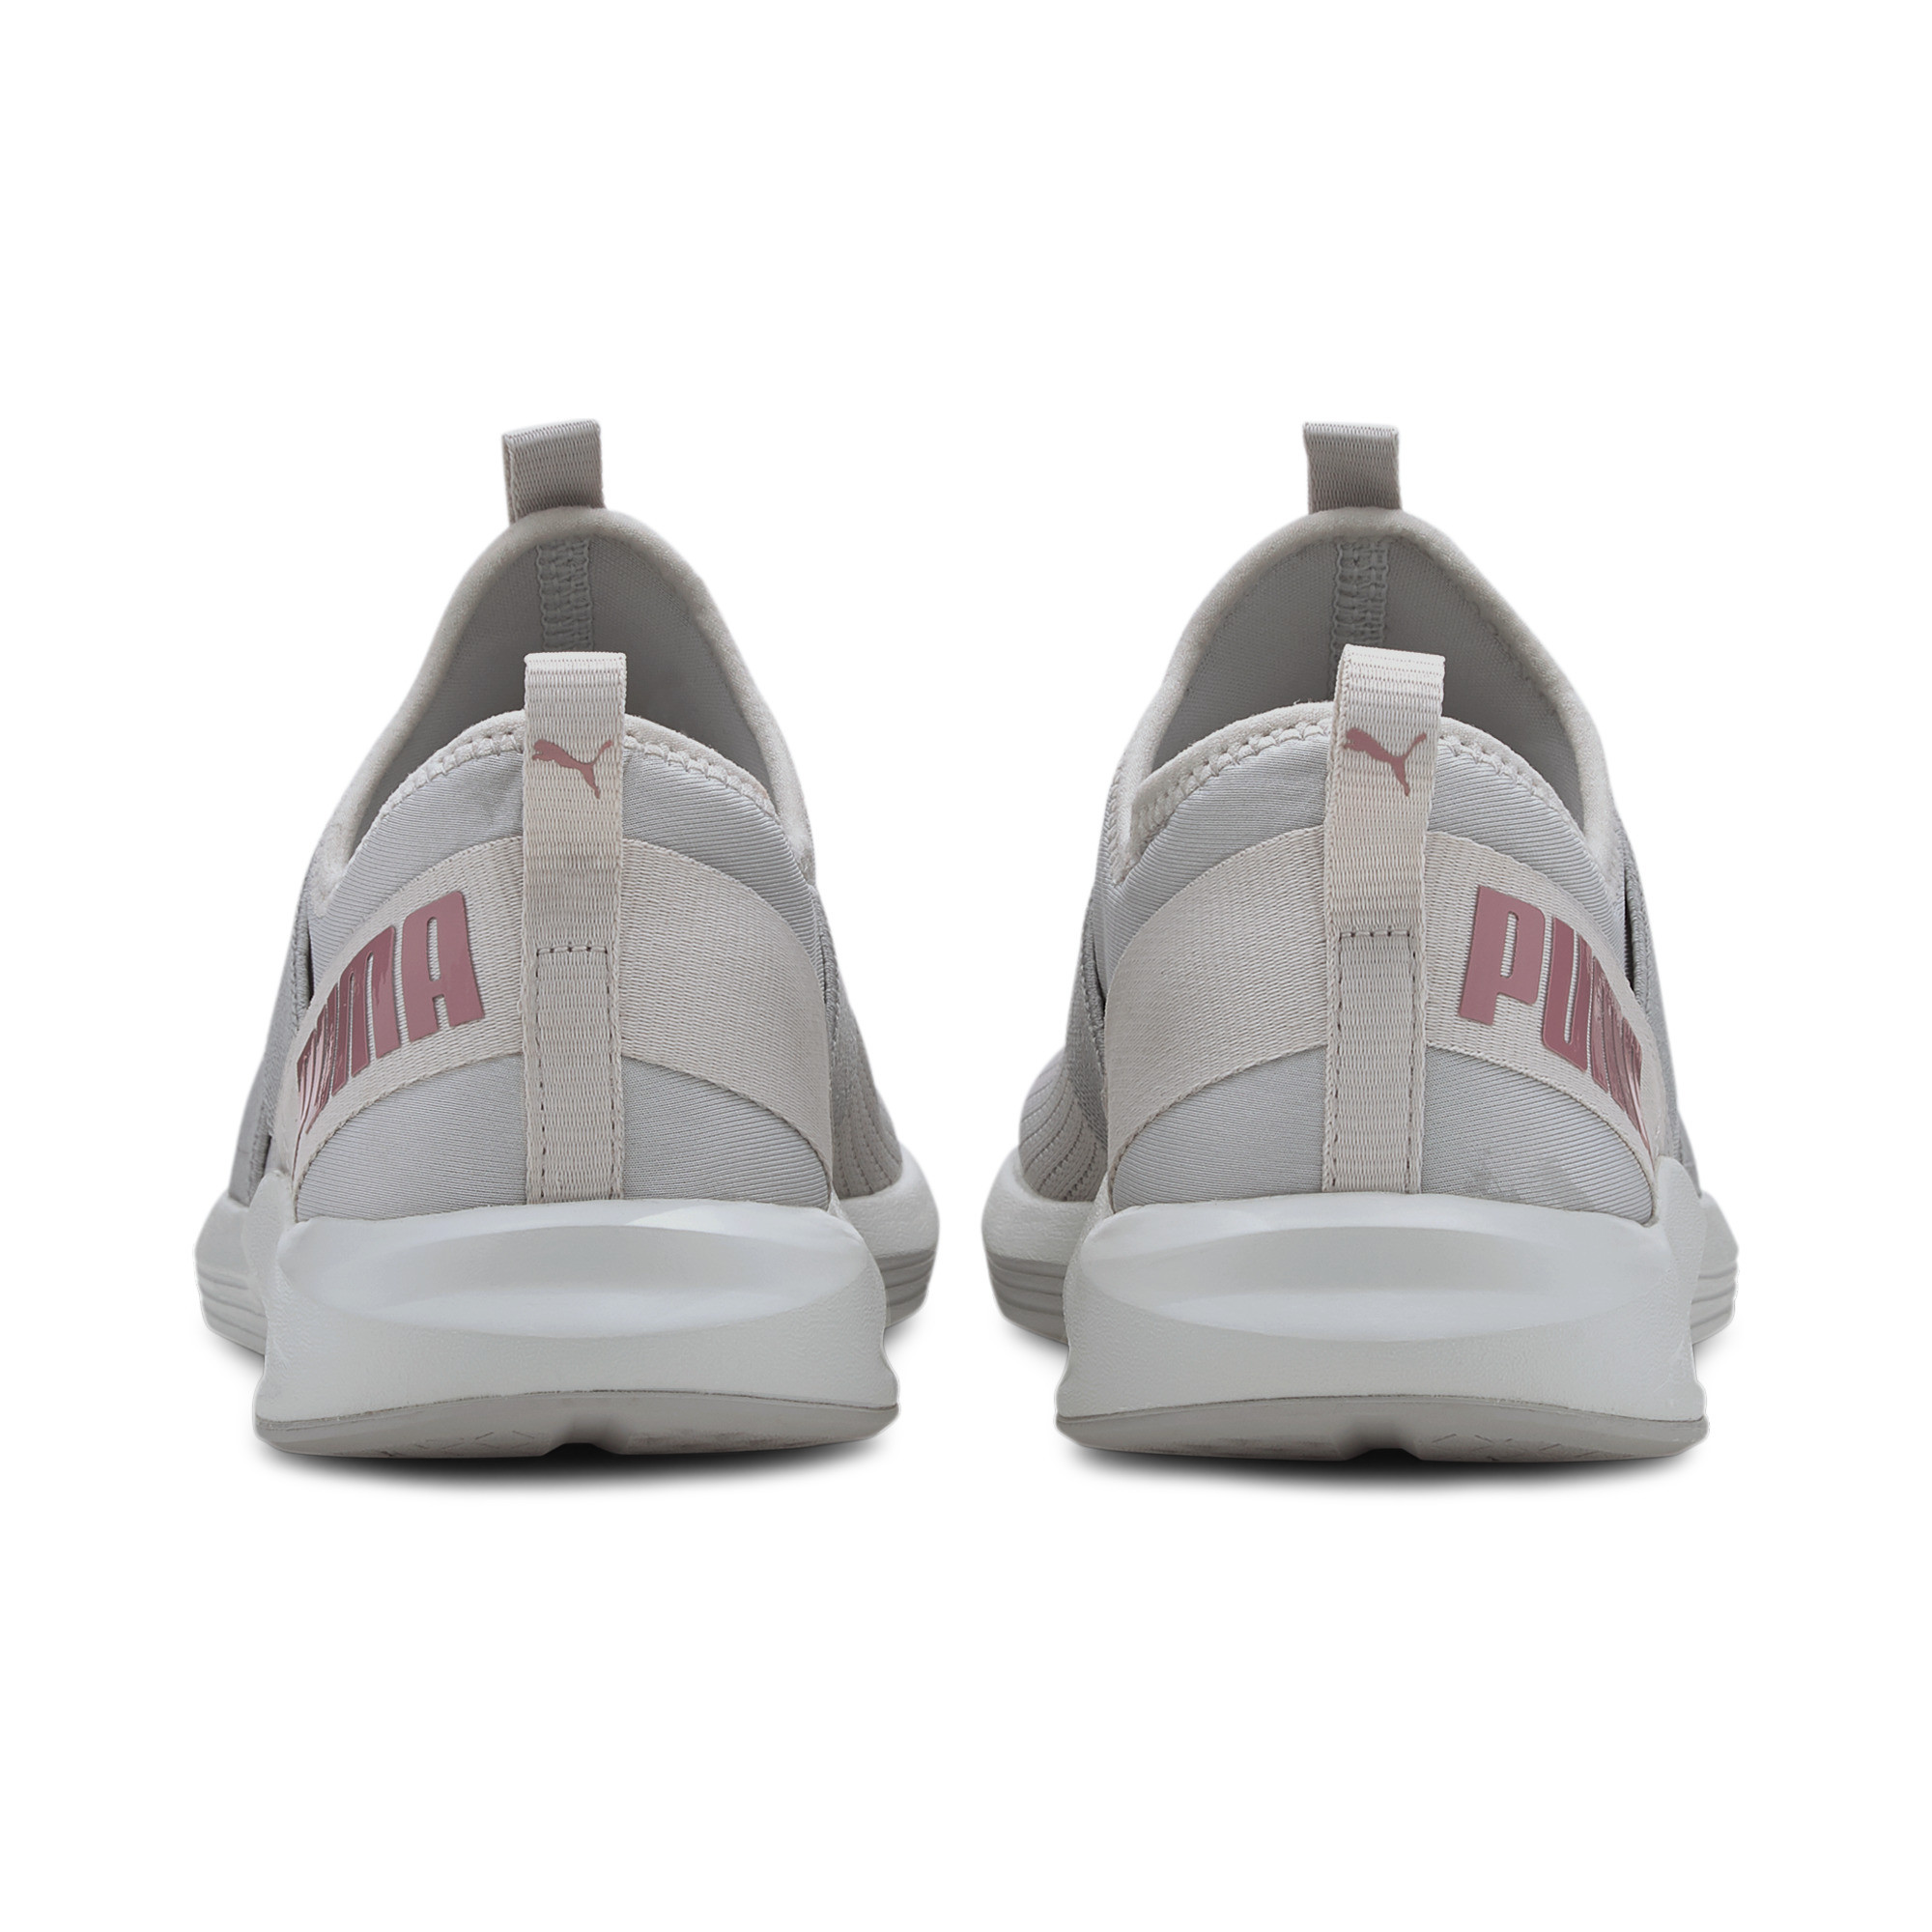 PUMA-Women-039-s-Prowl-Slip-On-Training-Shoes thumbnail 3